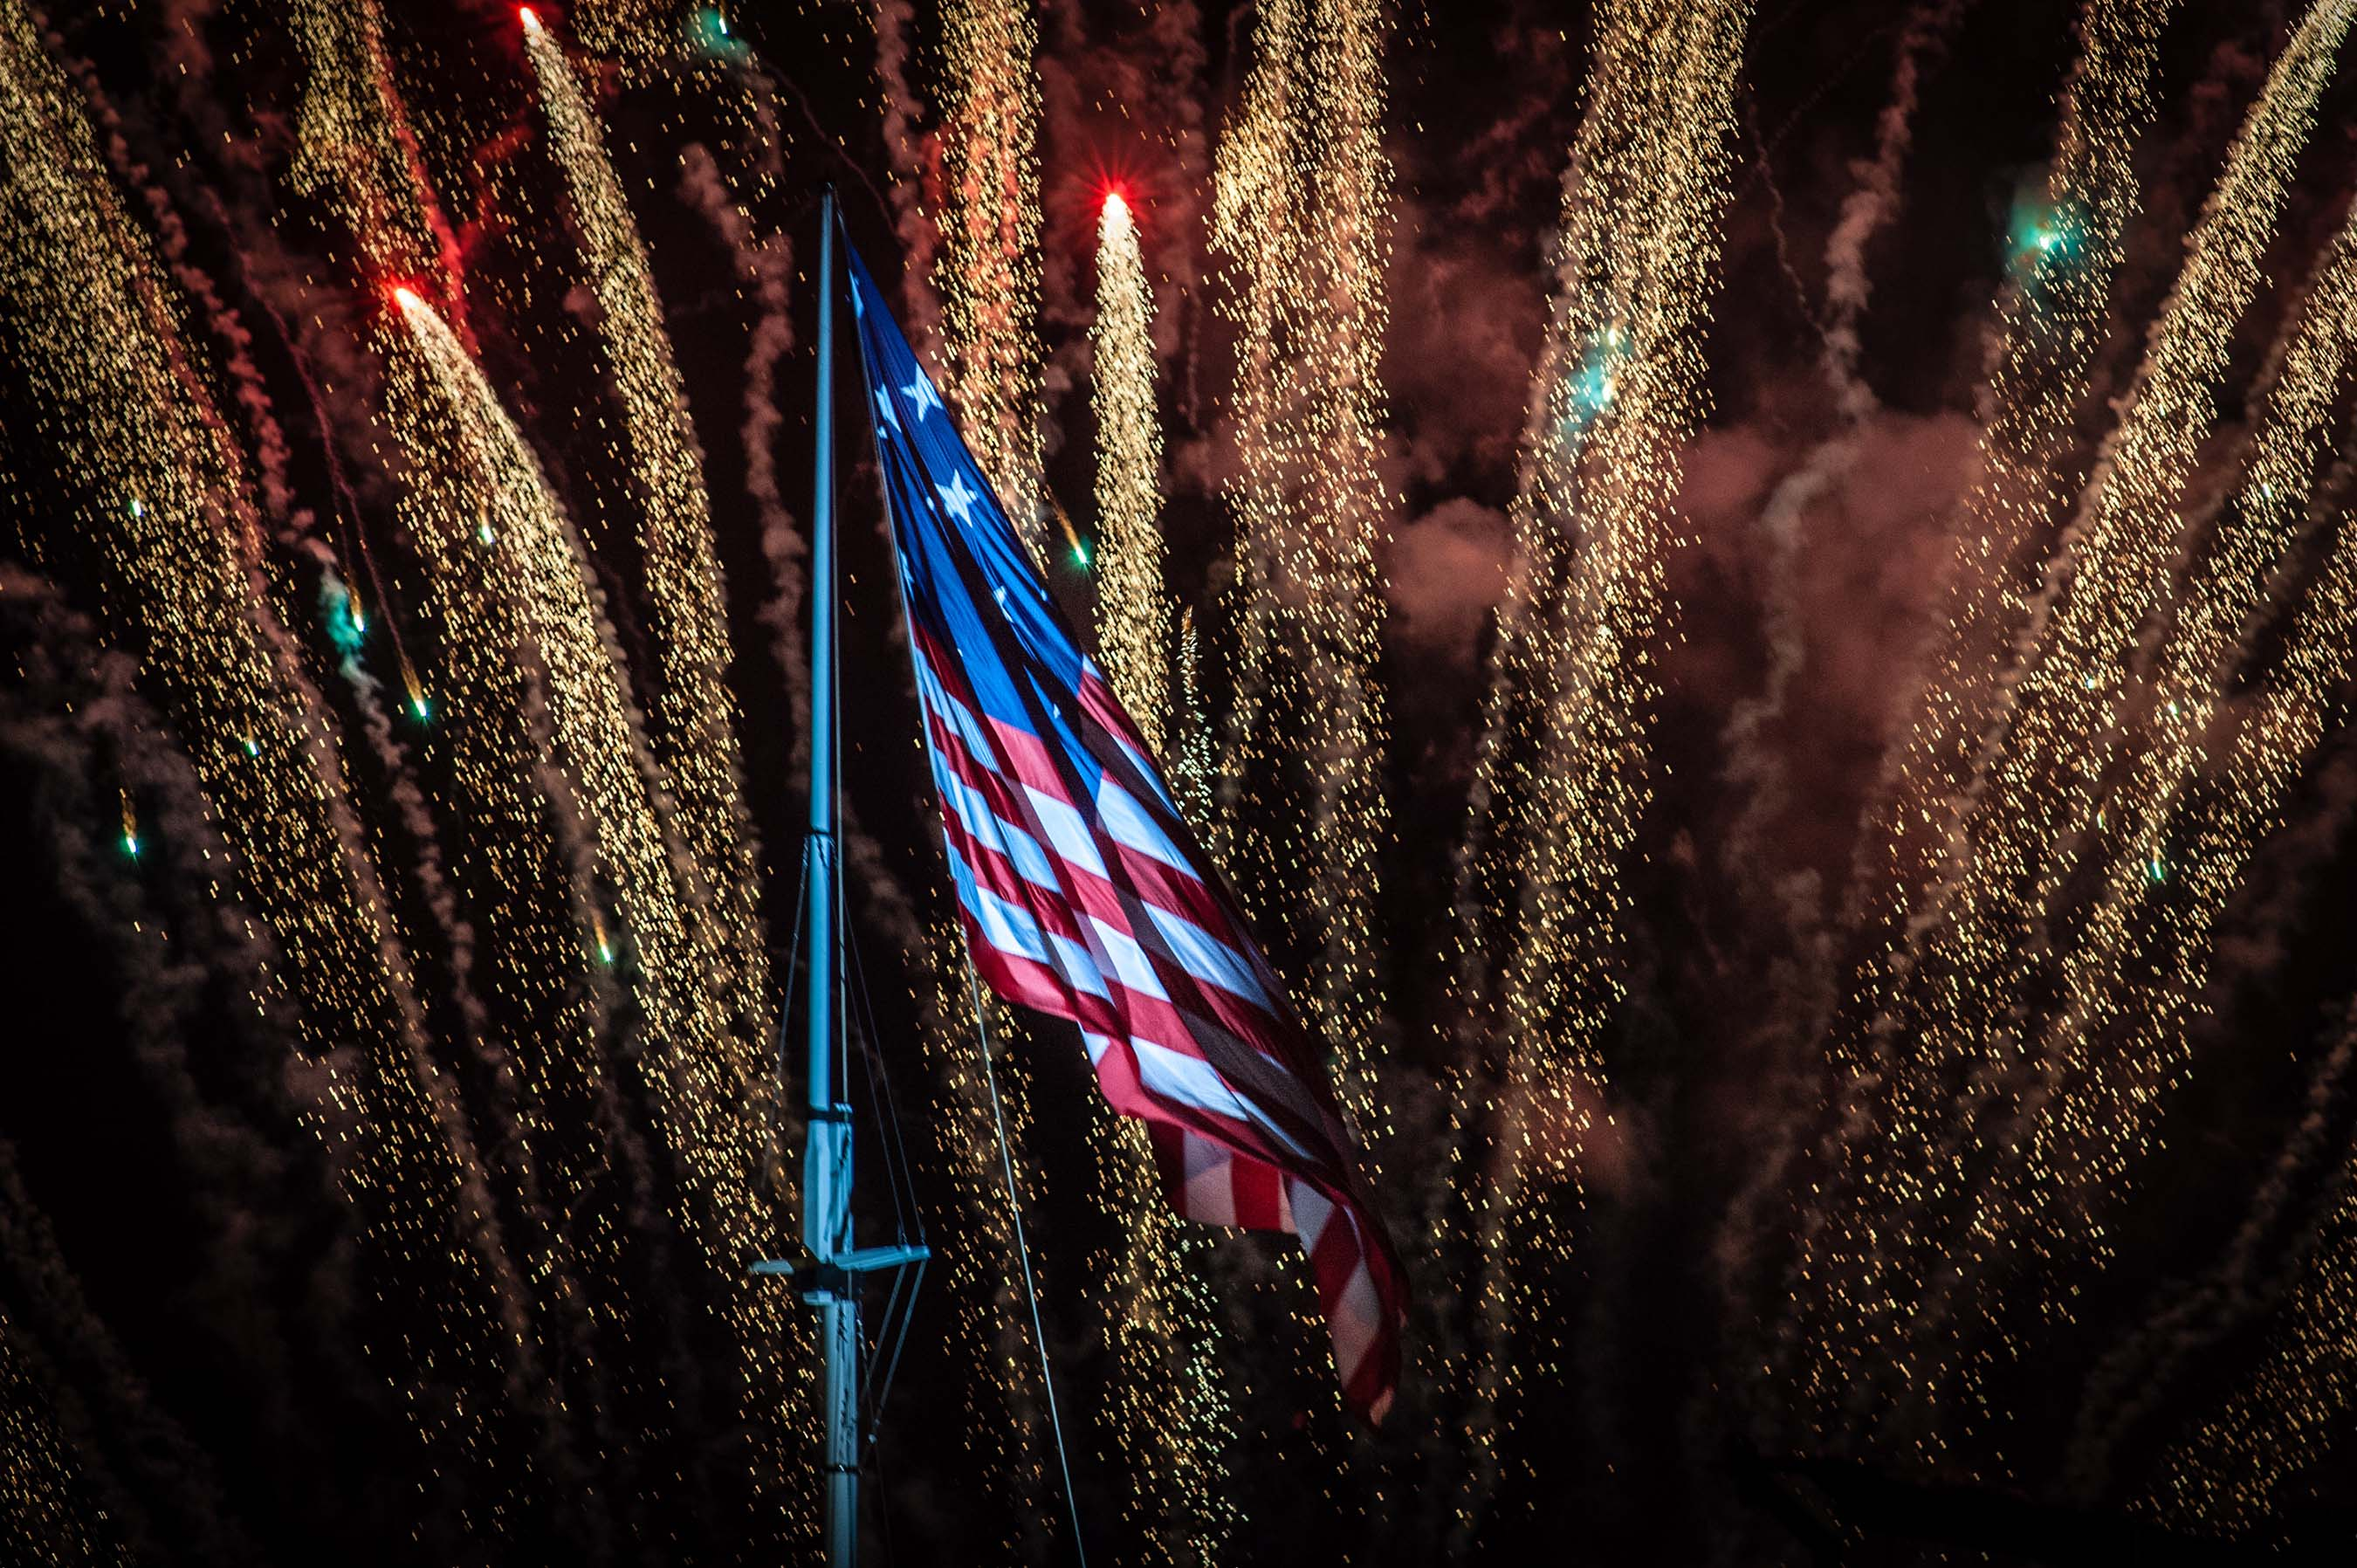 Fireworks illuminate an American flag above Fort McHenry in Baltimore Sept. 13. The pyrotechnics display was among the highlights of Star-Spangled Spectacular, a celebration of the 200th anniversary of Francis Scott Key's National Anthem.